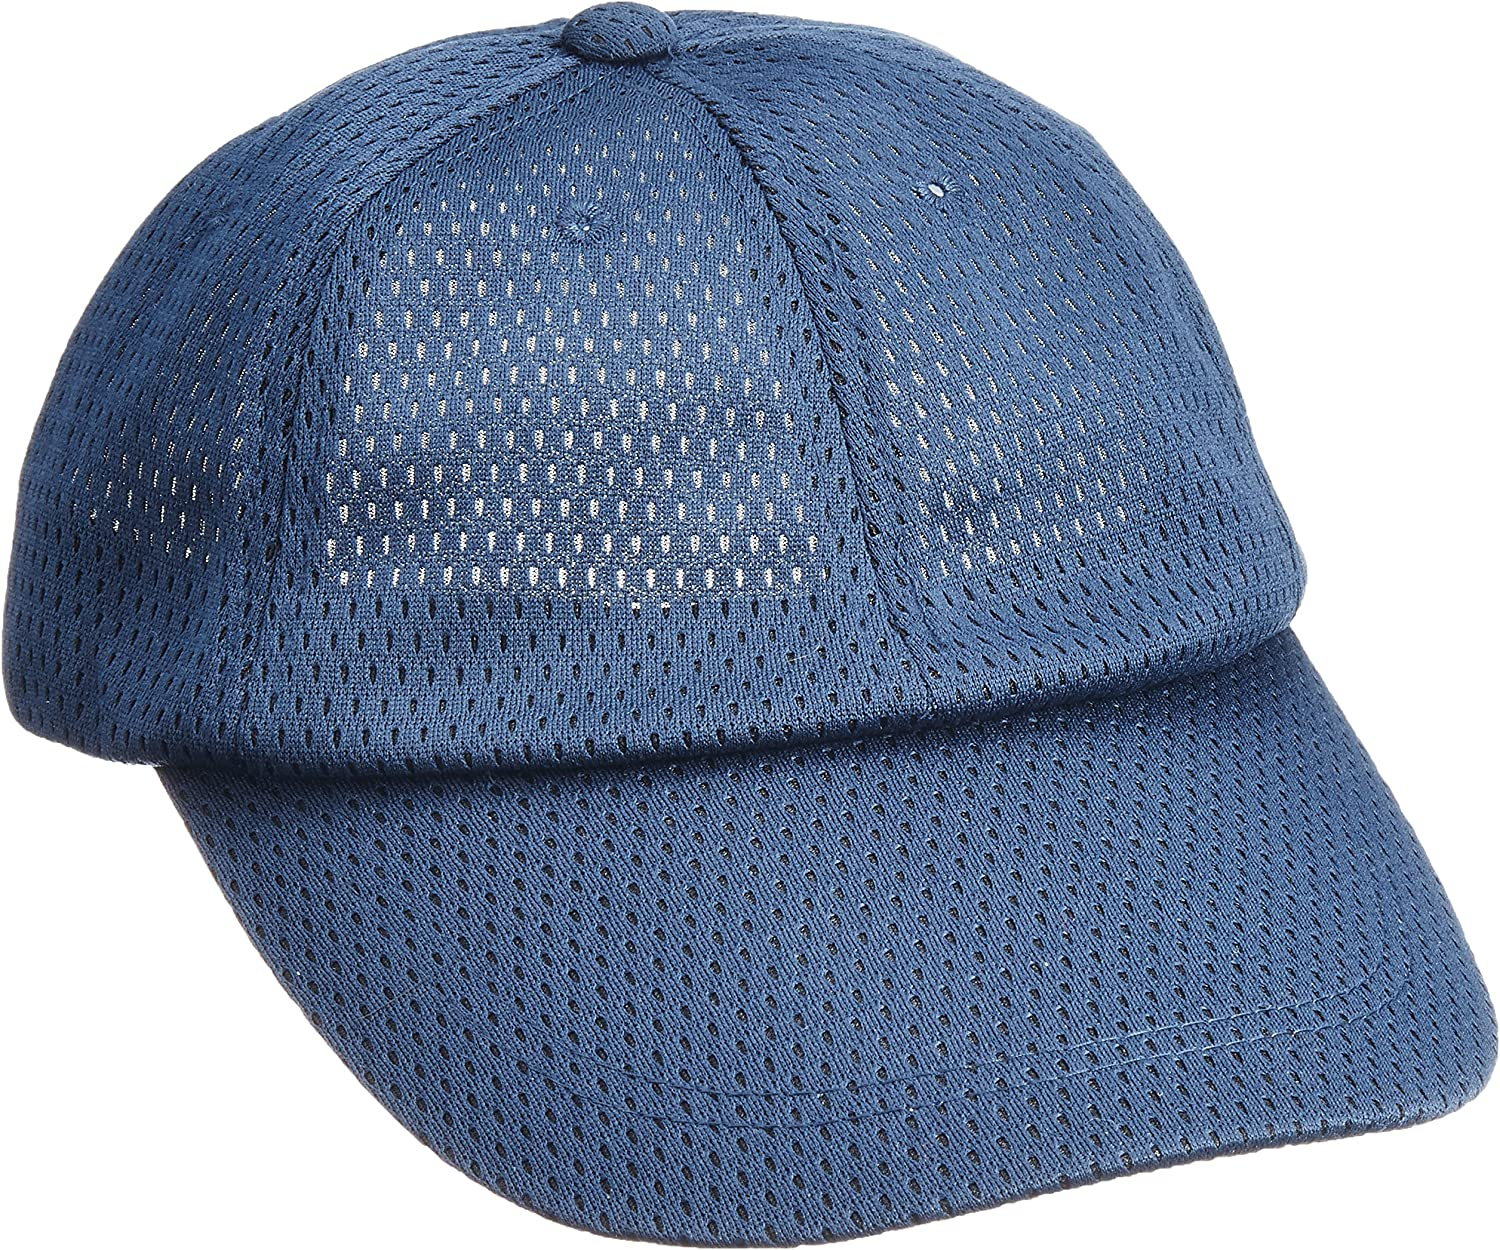 Captain stag hat light mesh cap navy UM-2510